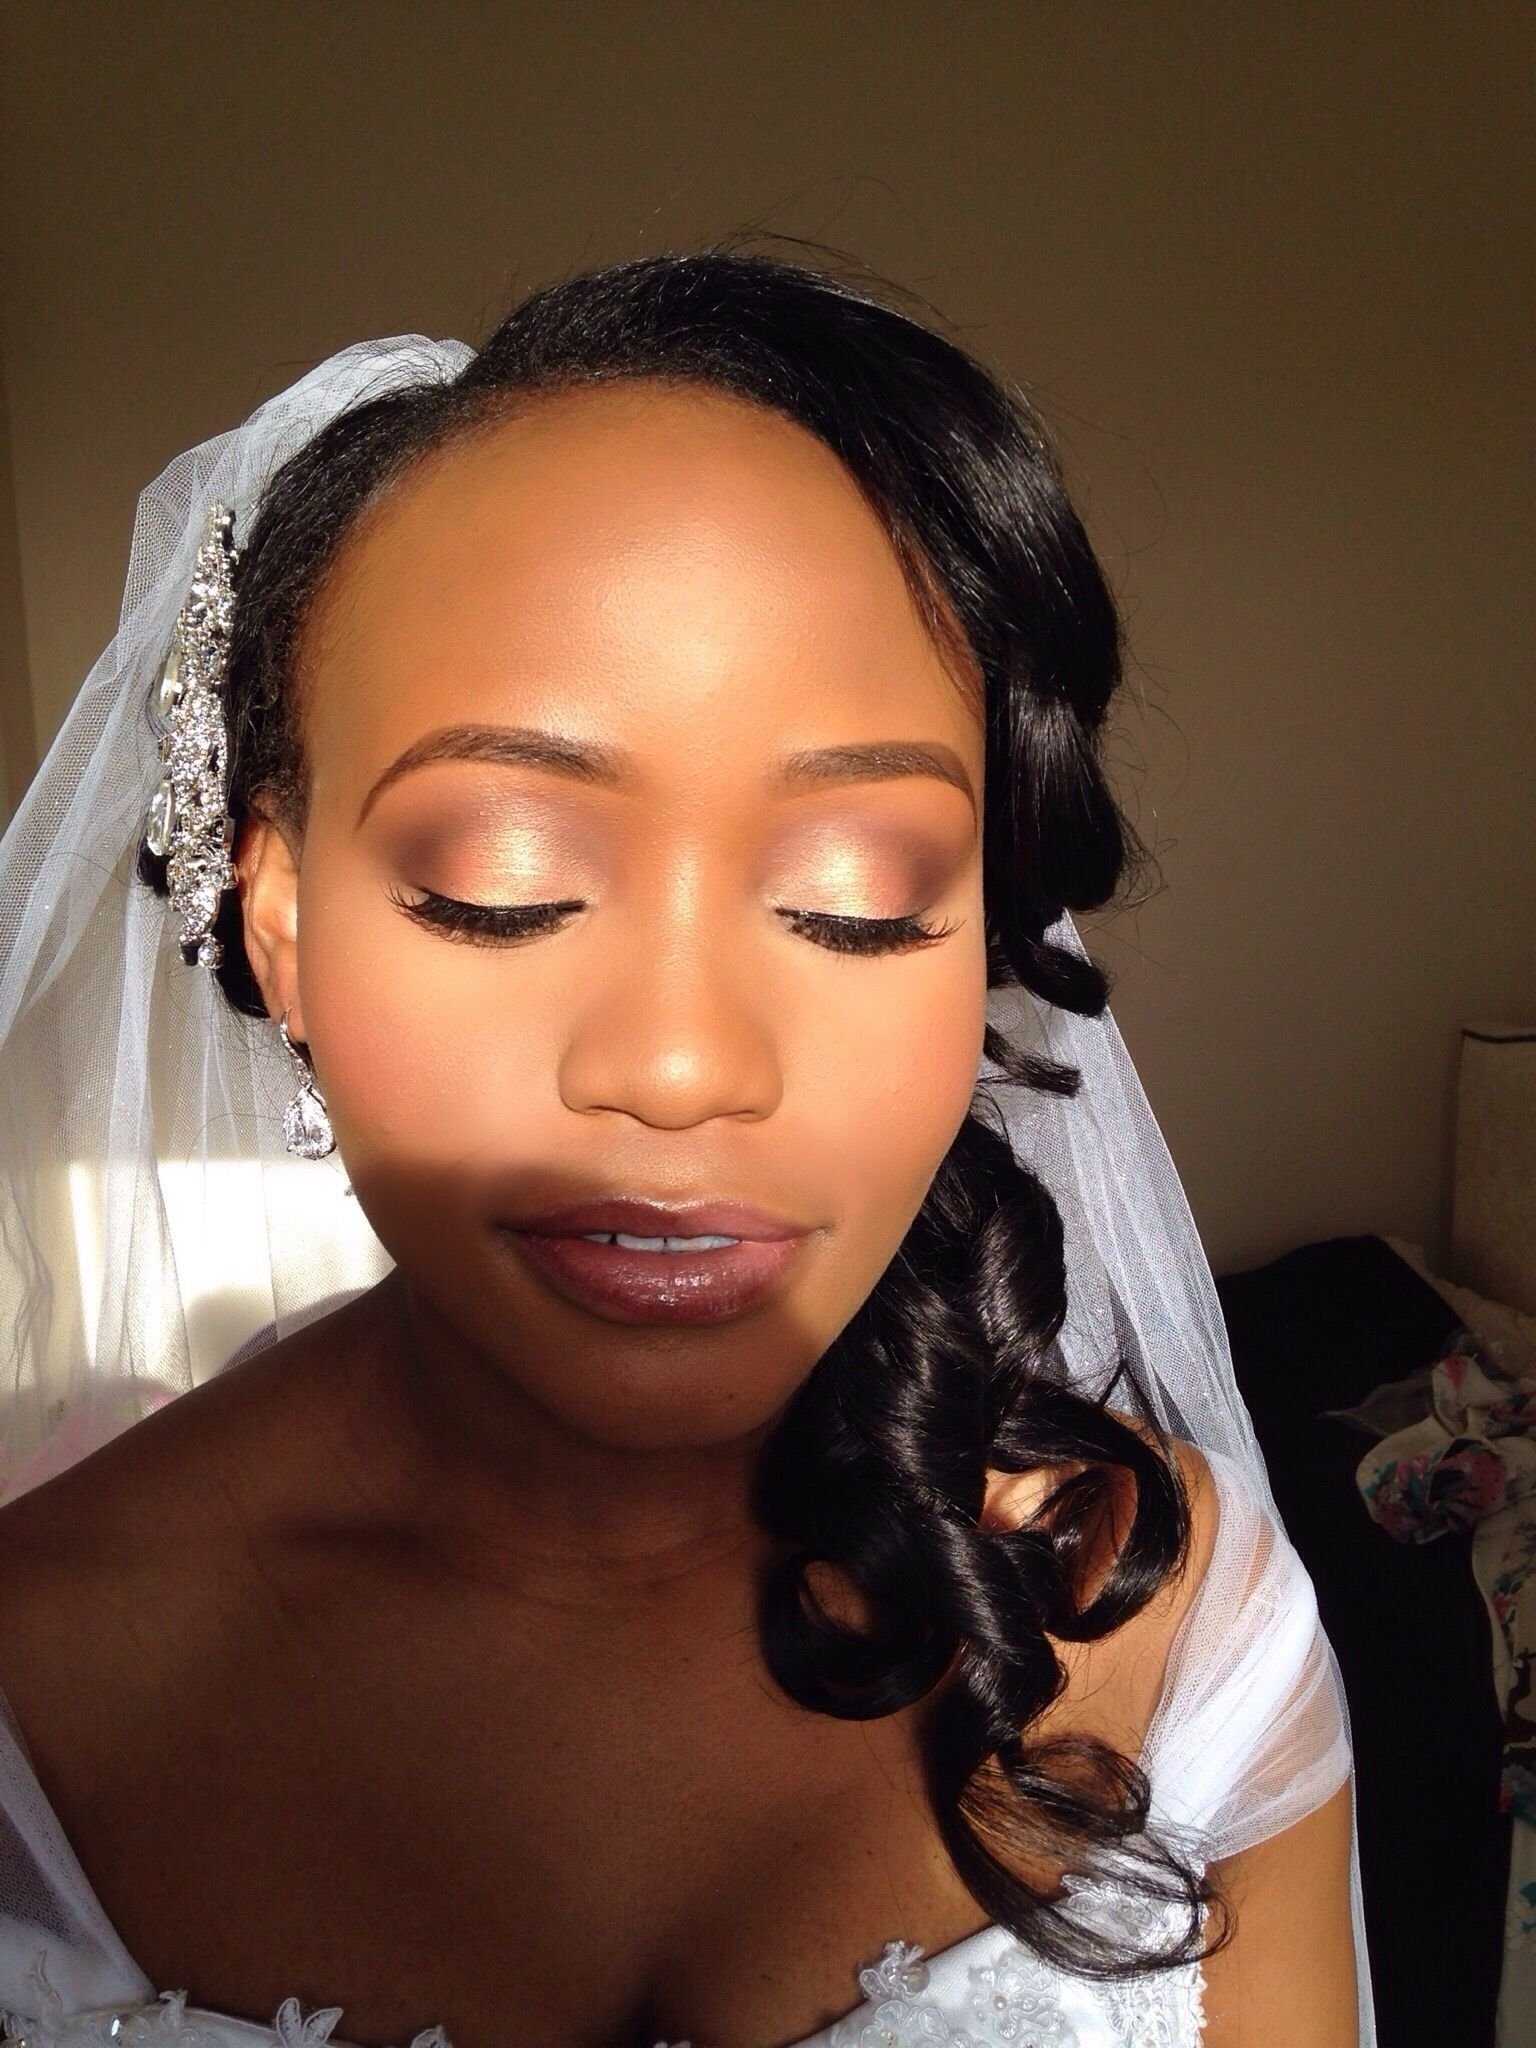 How To Apply Bridal Makeup For Black Skin : black makeup artist london, makeup artist for black skin ...